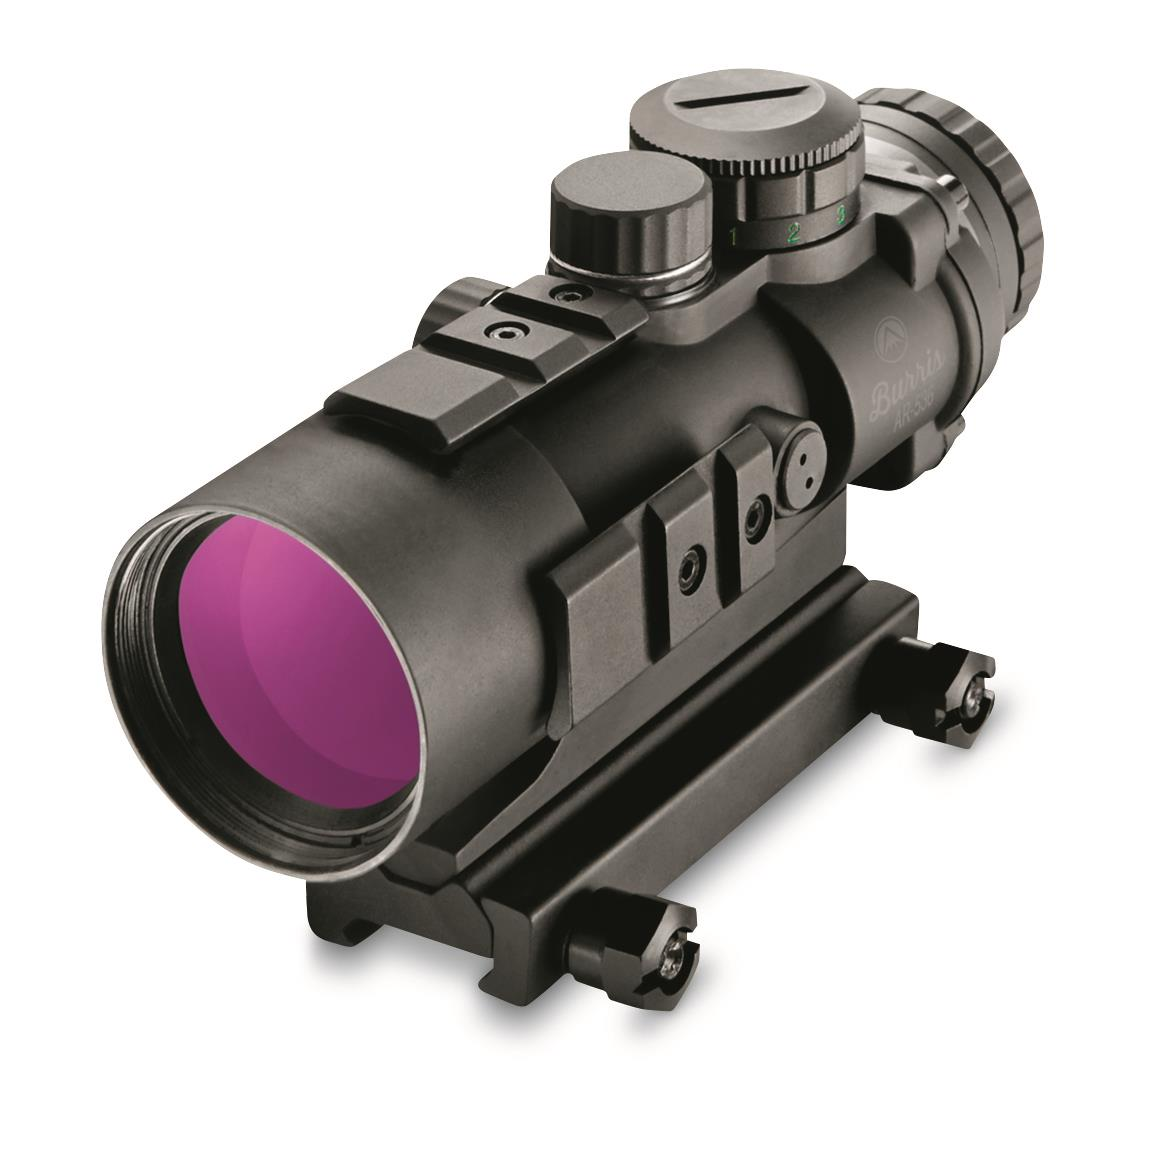 Burris AR-536 5X Tactical Sight